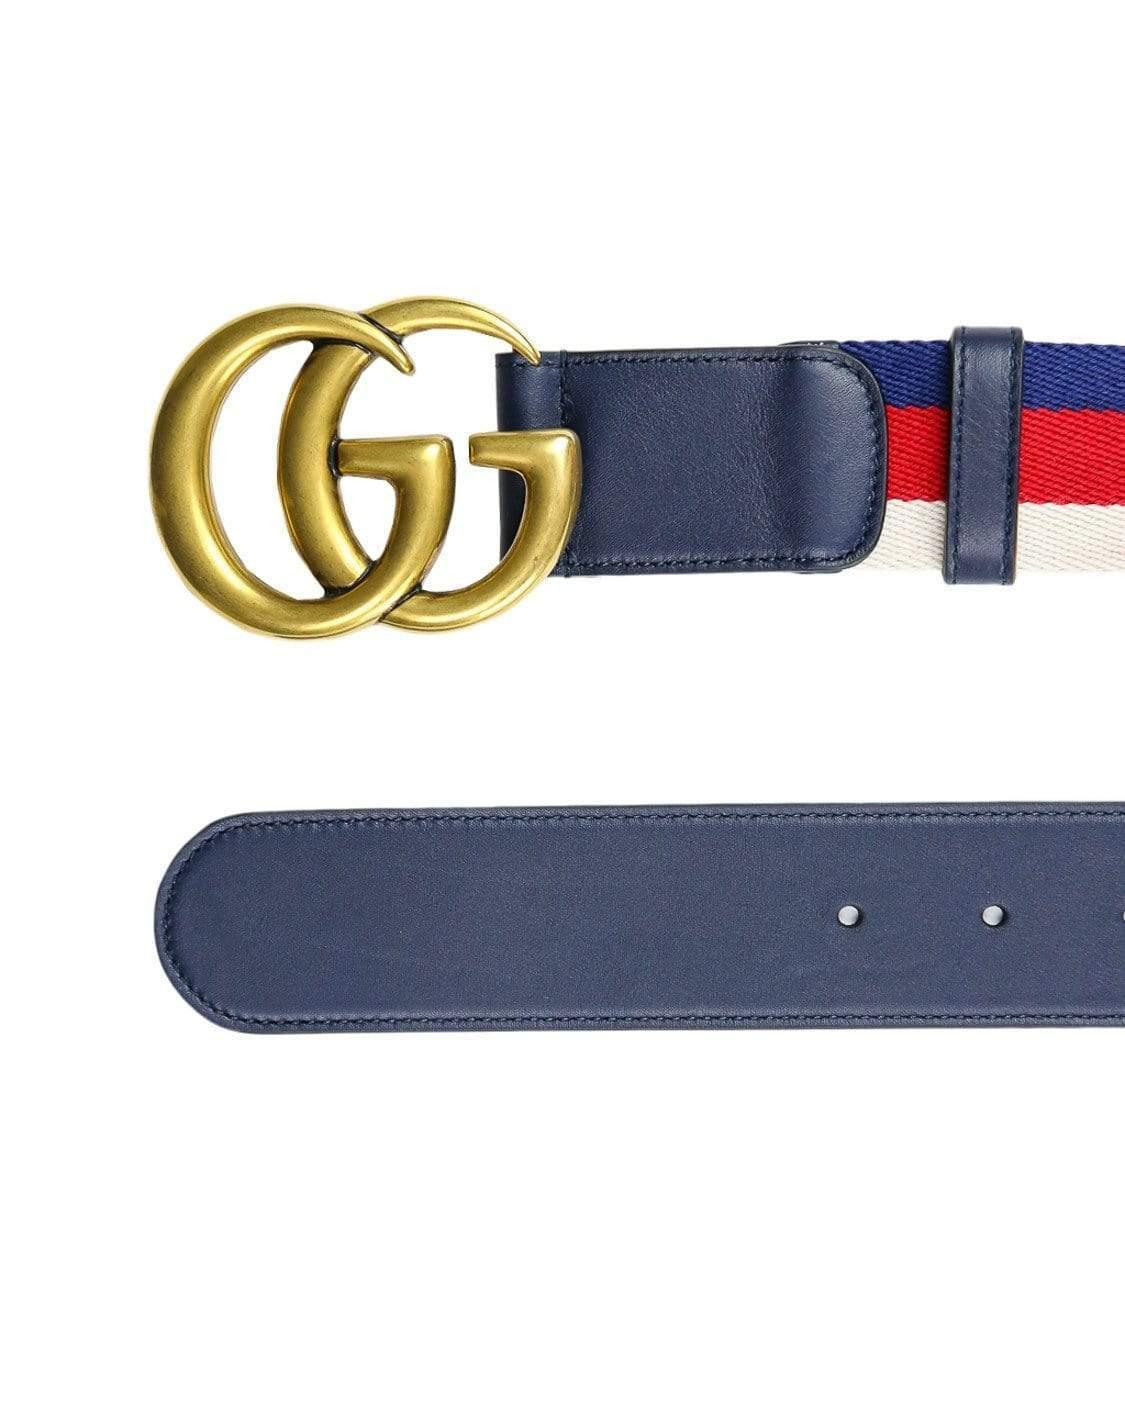 bbd21b22394 Gucci Red in Blue - Save 1% - Lyst